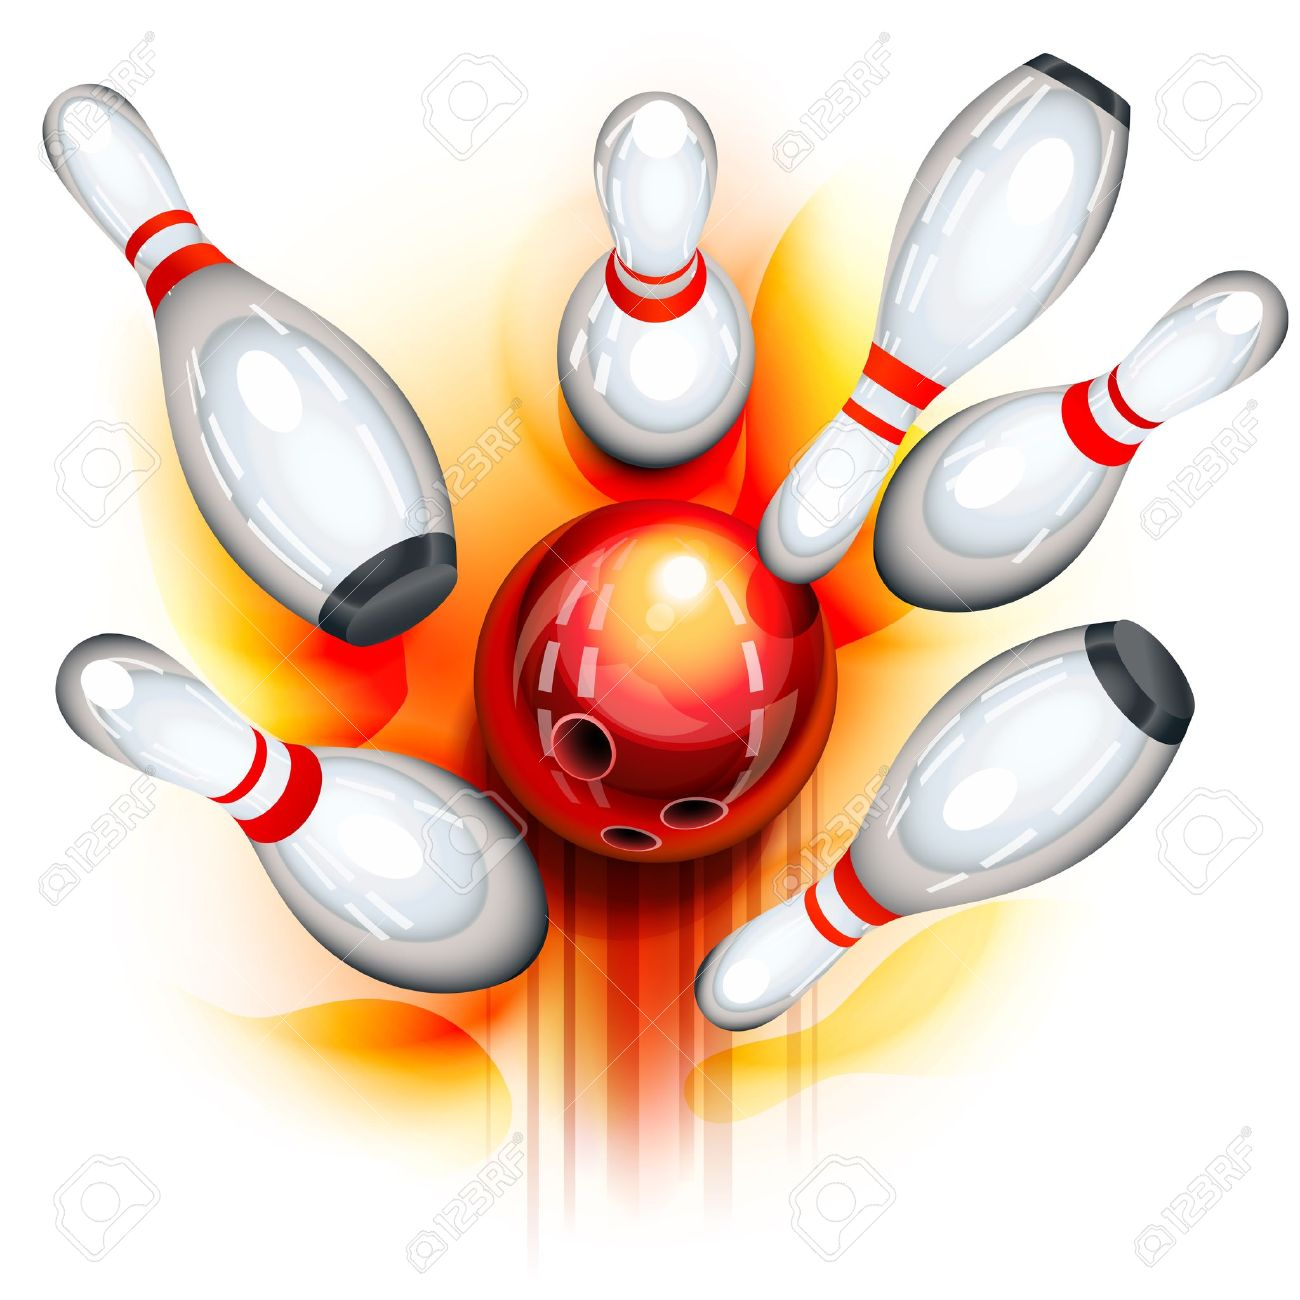 Pictures Of Bowling Balls And Pins | Free download on ...